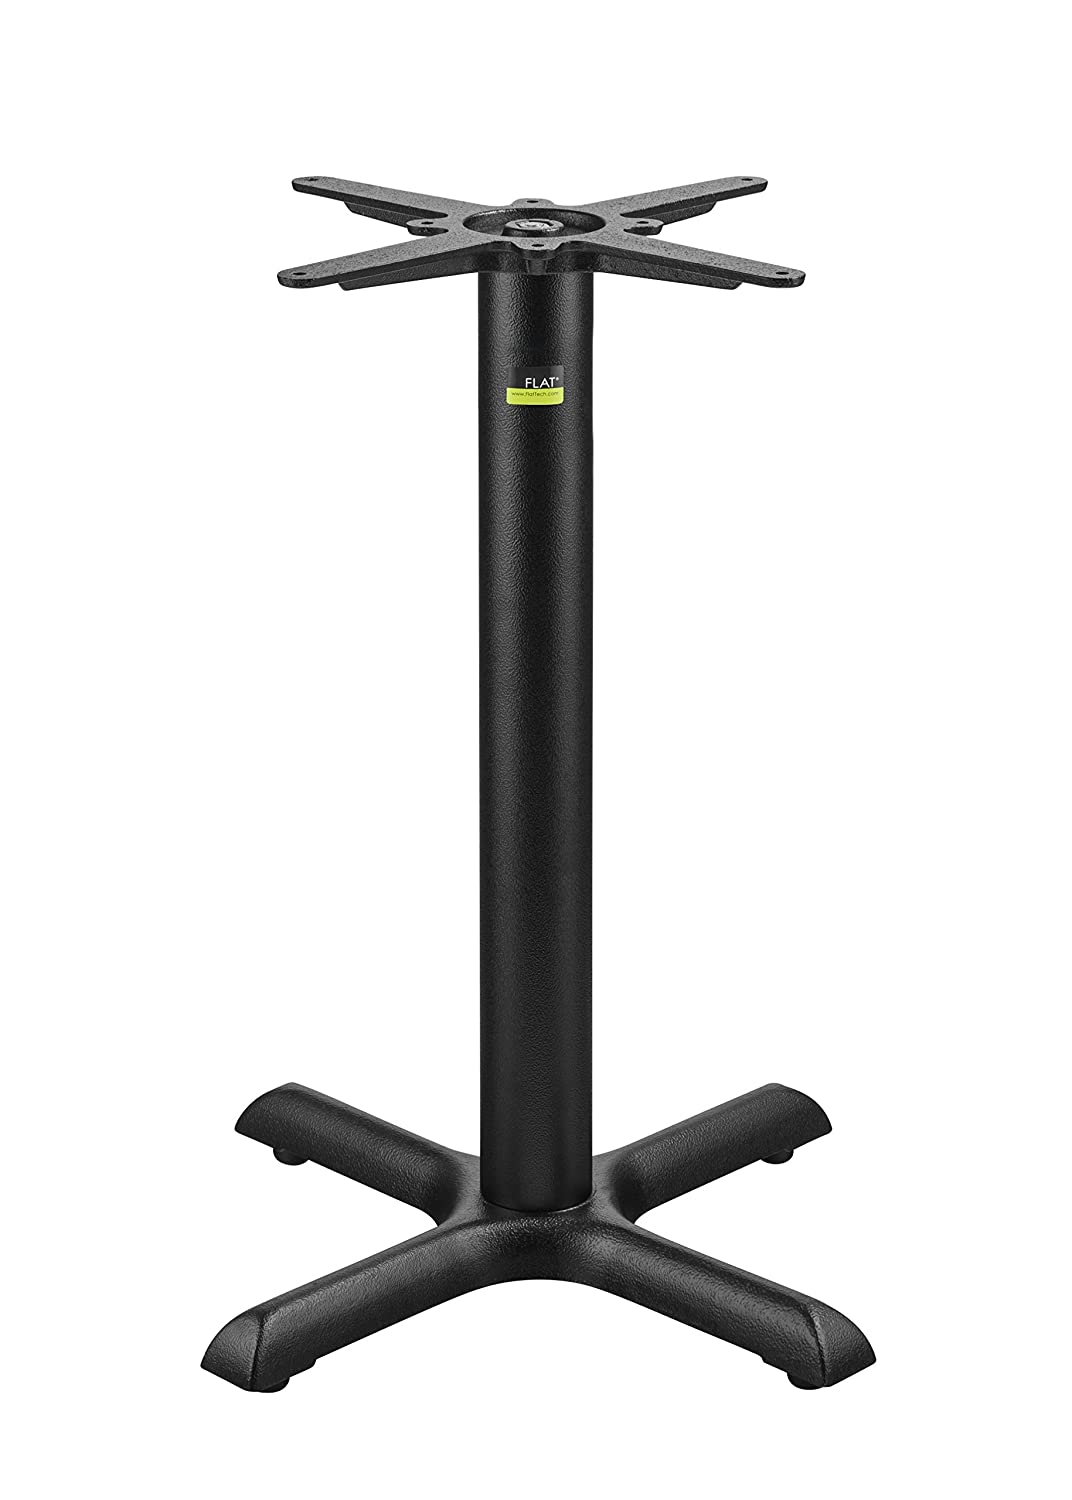 FLAT Self-Stabilizing KX22 22 , Cast iron, Dining Height Table Base